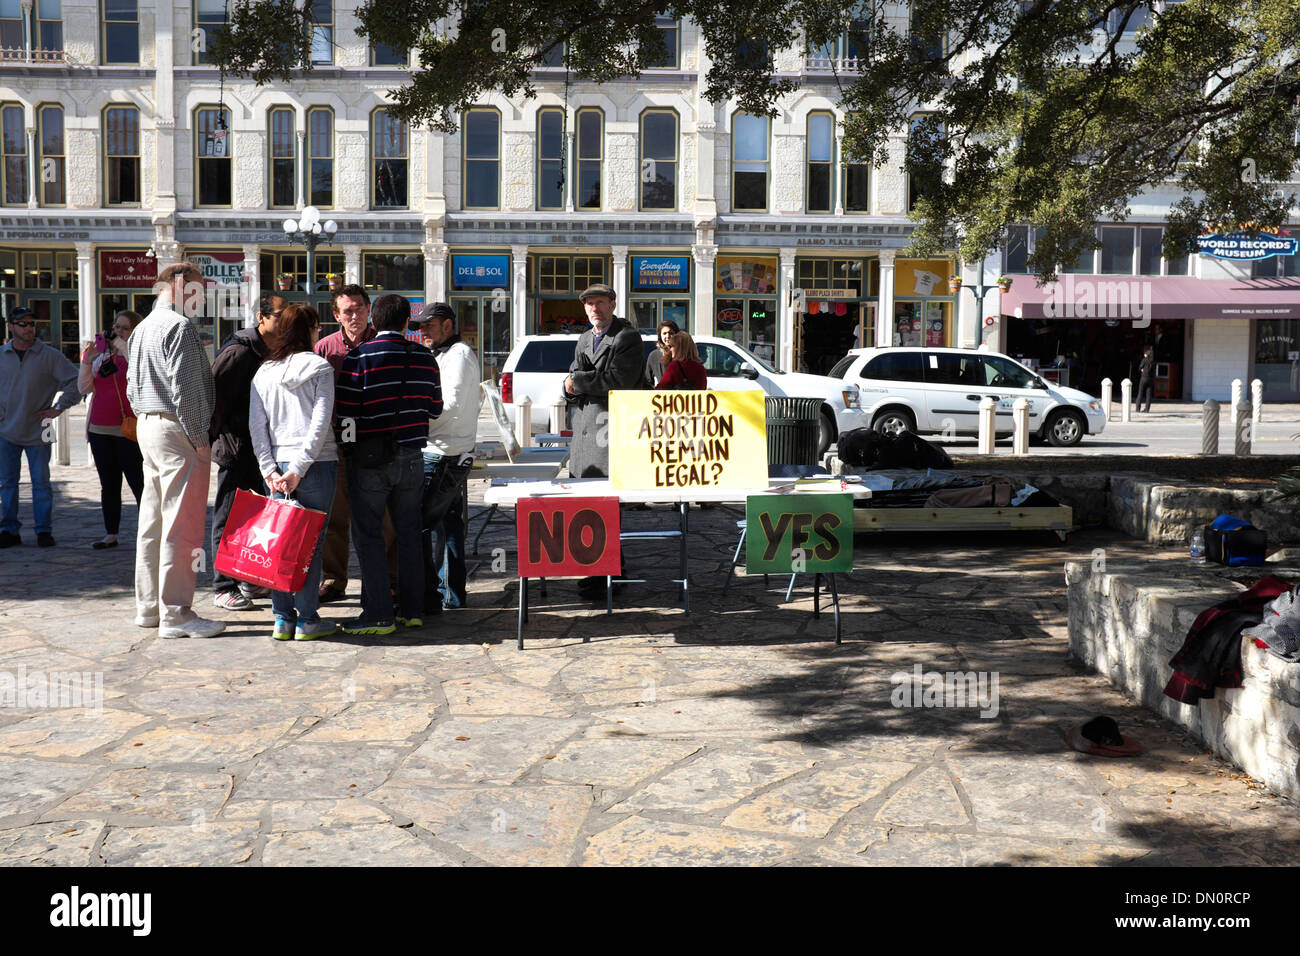 Anti abortion protest in front of the Alamo in San Antonio, Texas - Stock Image